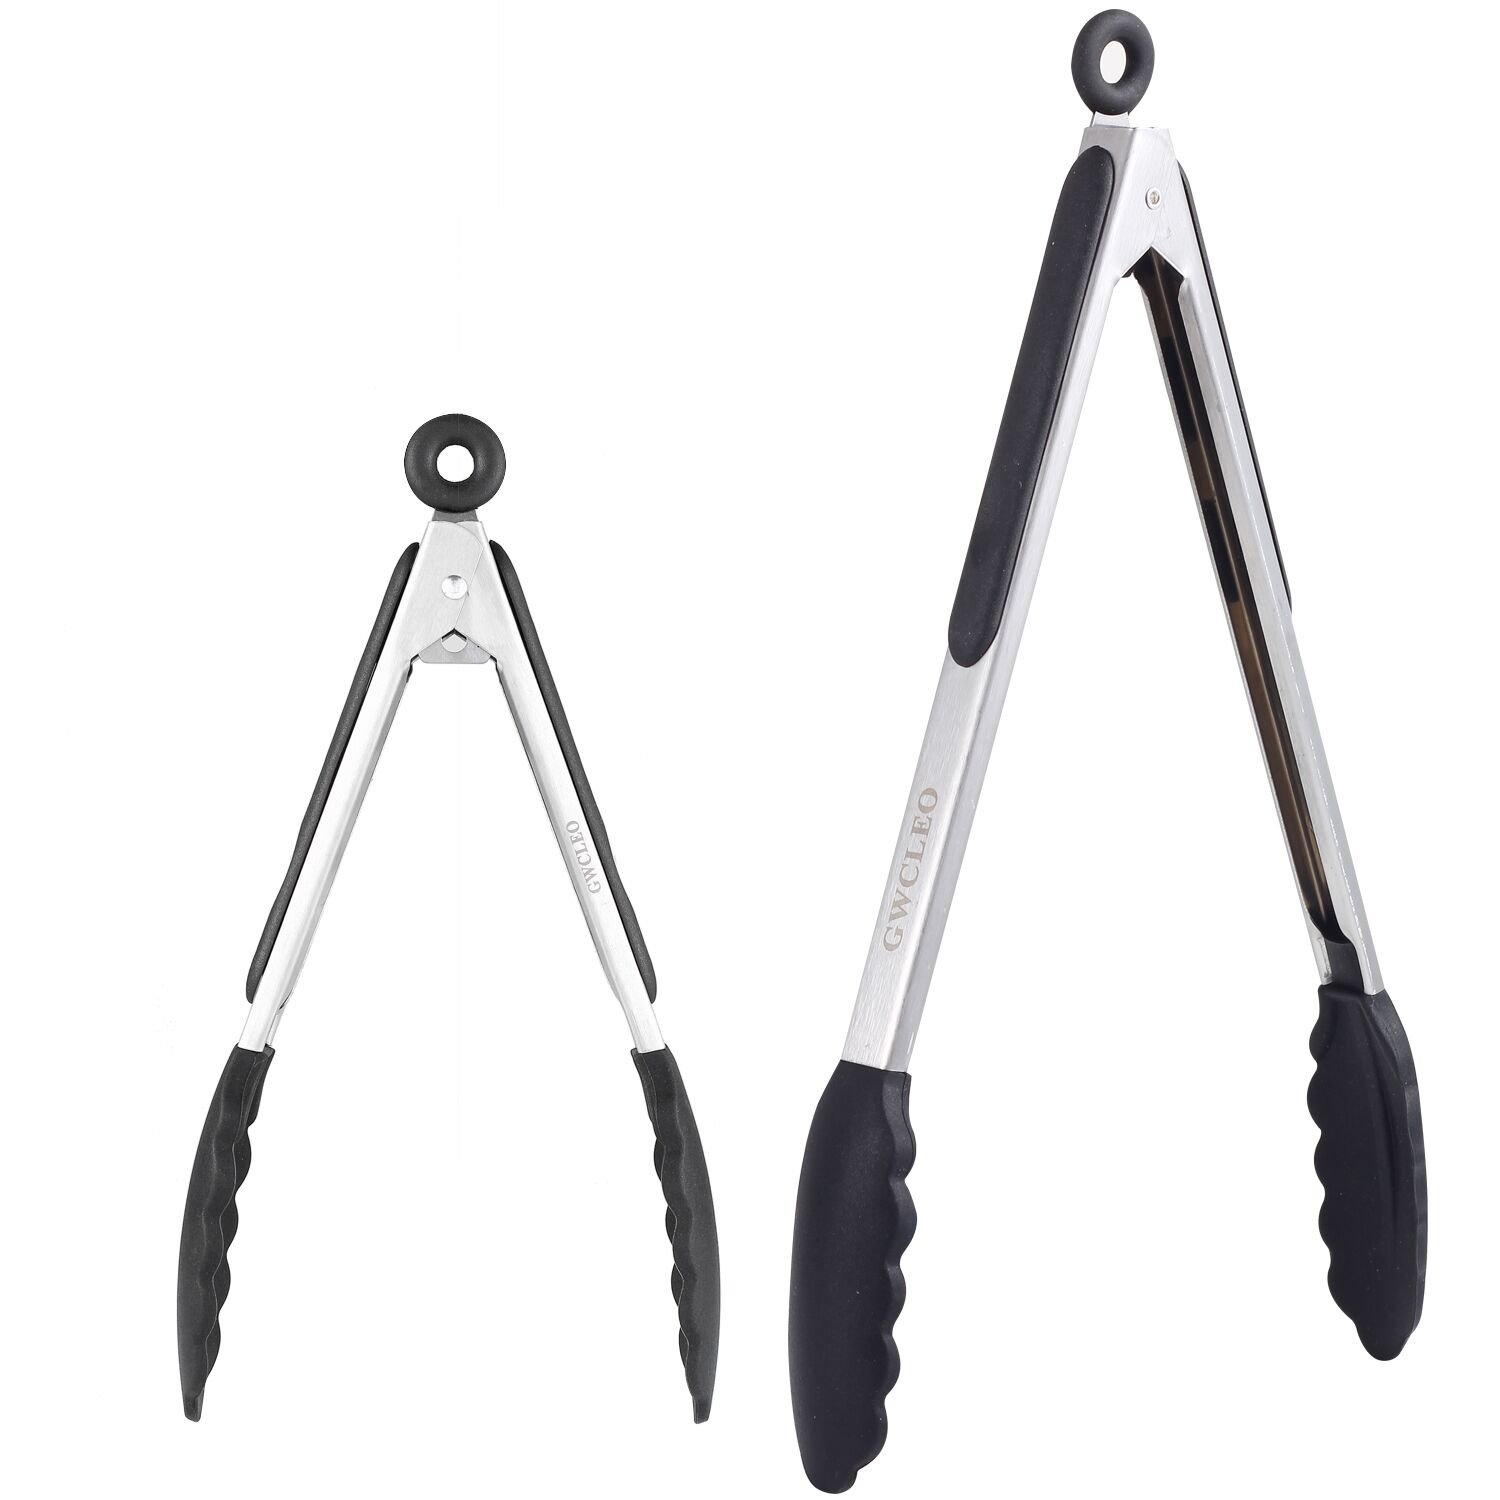 Cooking Tongs,GWCLEO Kitchen Tongs with Stainless Steel,Non-Scratch Silicone Tips,Non-Slip and Good-Grips Silicone Handle,Food Tongs for Barbecue,Picnic,Serving,Buffet etc (Black,9 and 12 inches)